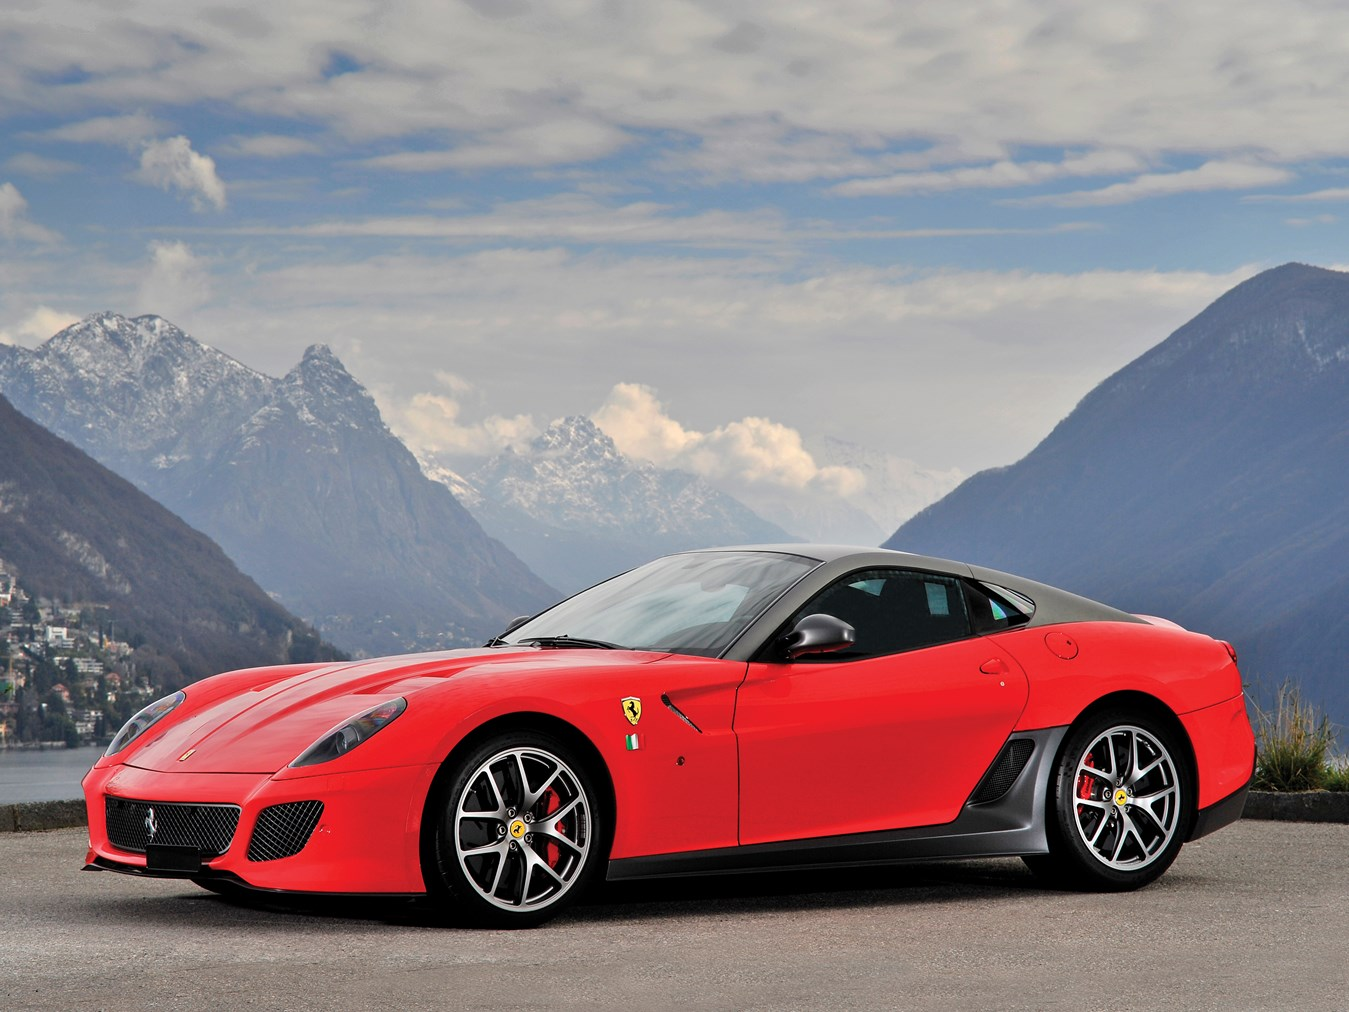 rm sotheby 39 s 2011 ferrari 599 gto monaco 2016. Black Bedroom Furniture Sets. Home Design Ideas